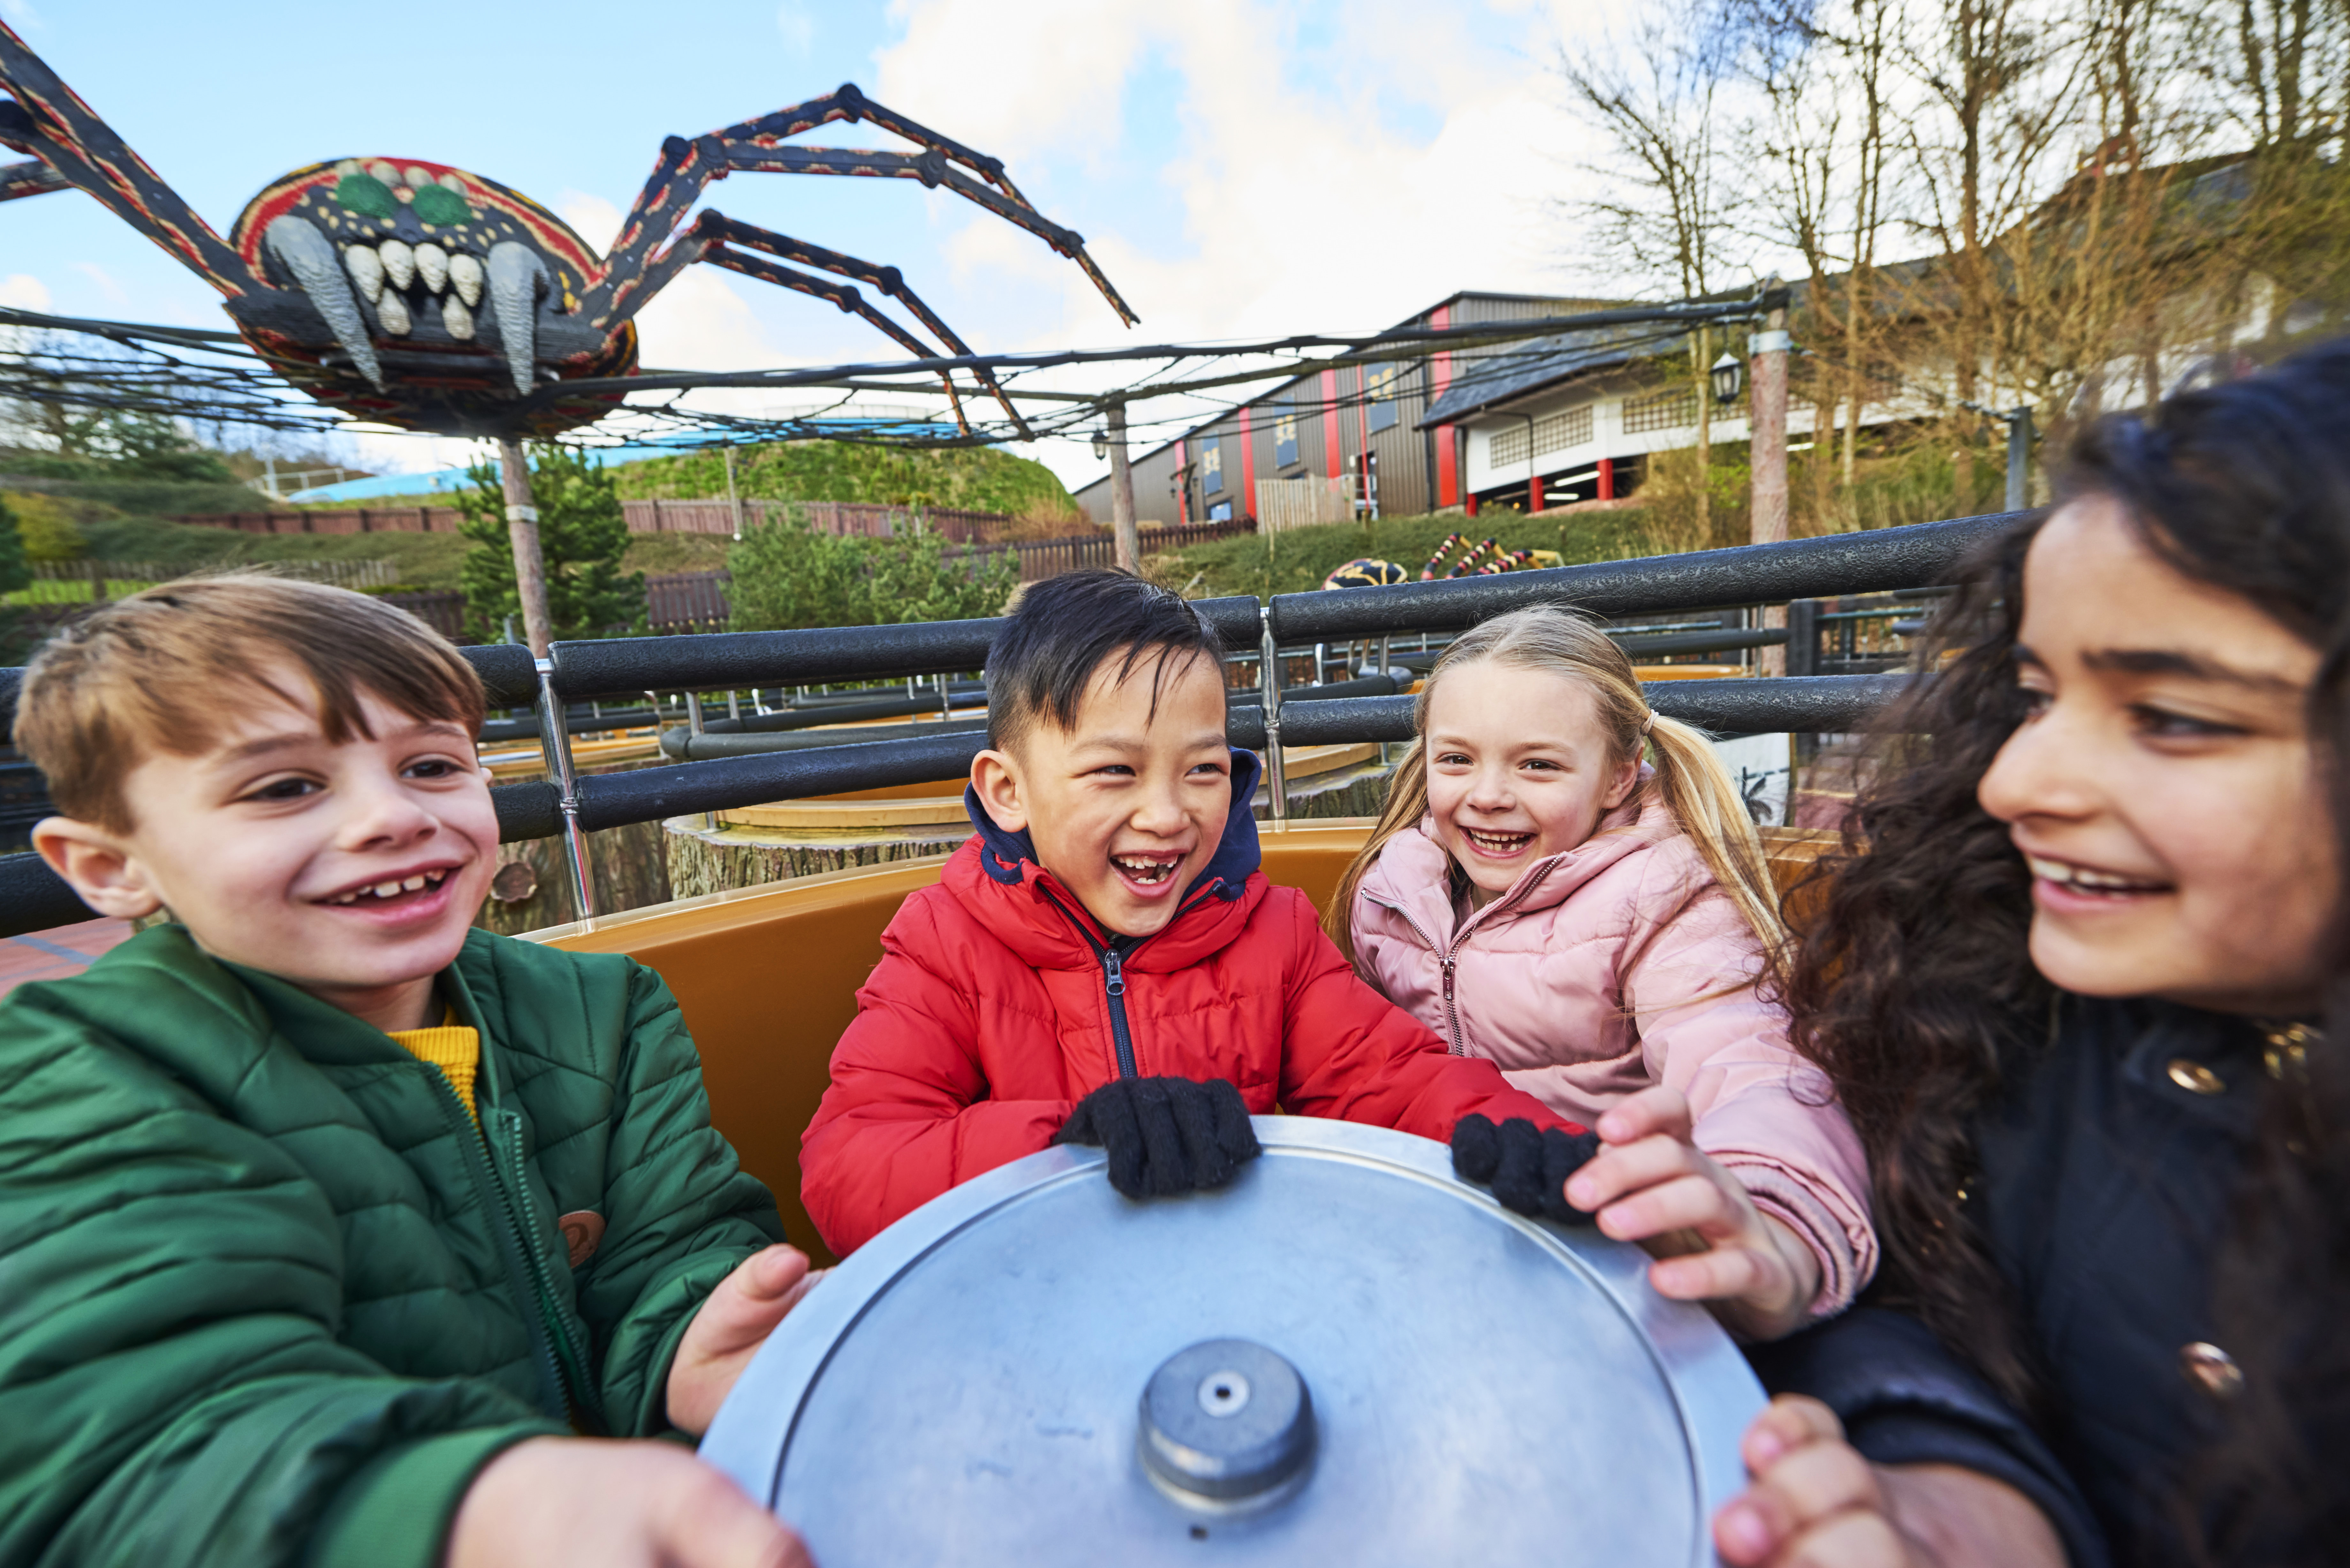 Spinning Spider at the LEGOLAND Windsor Resort